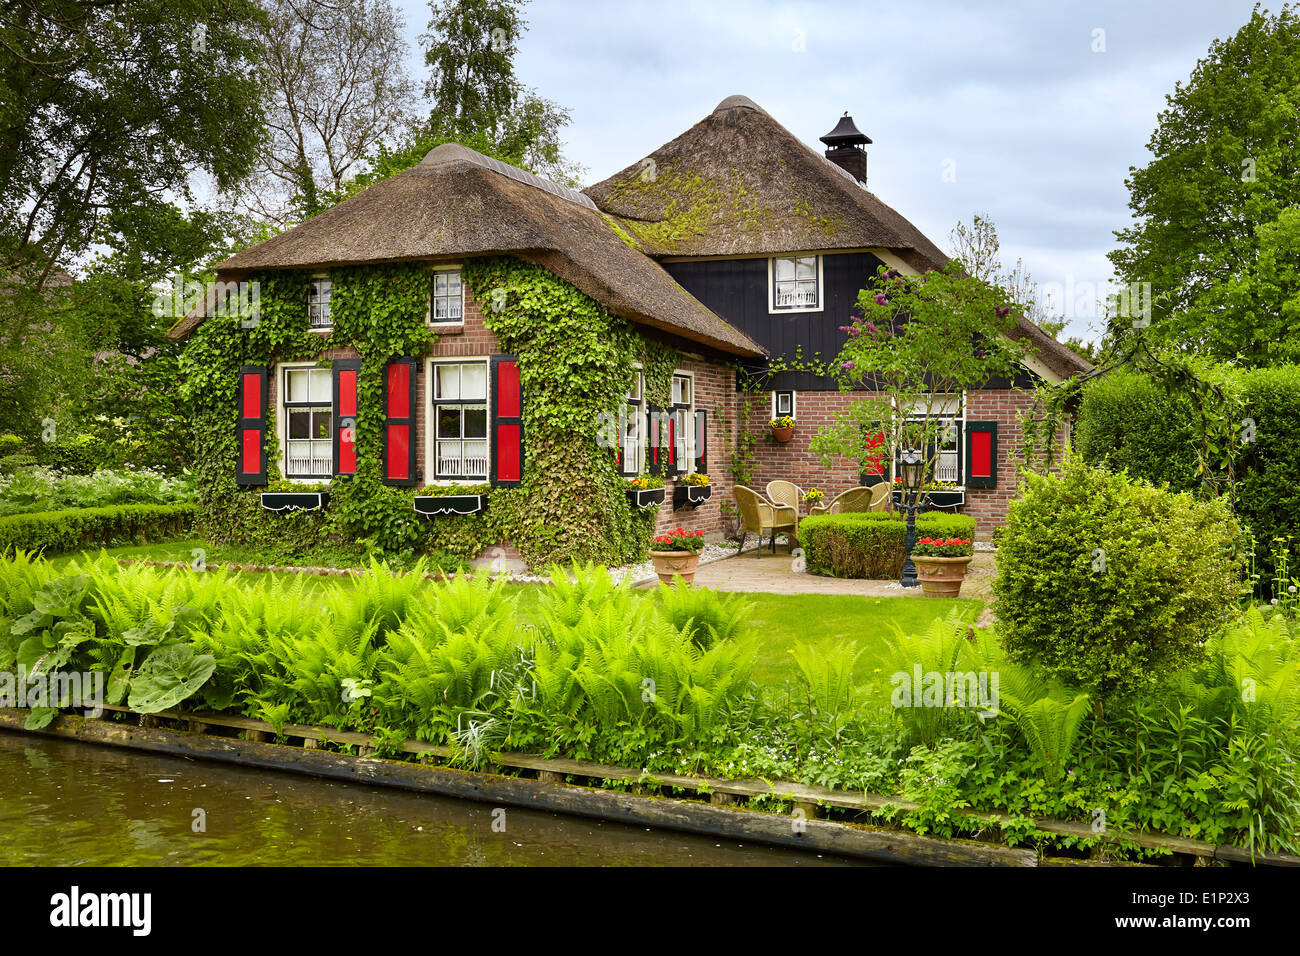 Giethoorn village holland netherlands stock photo for Houses images pictures